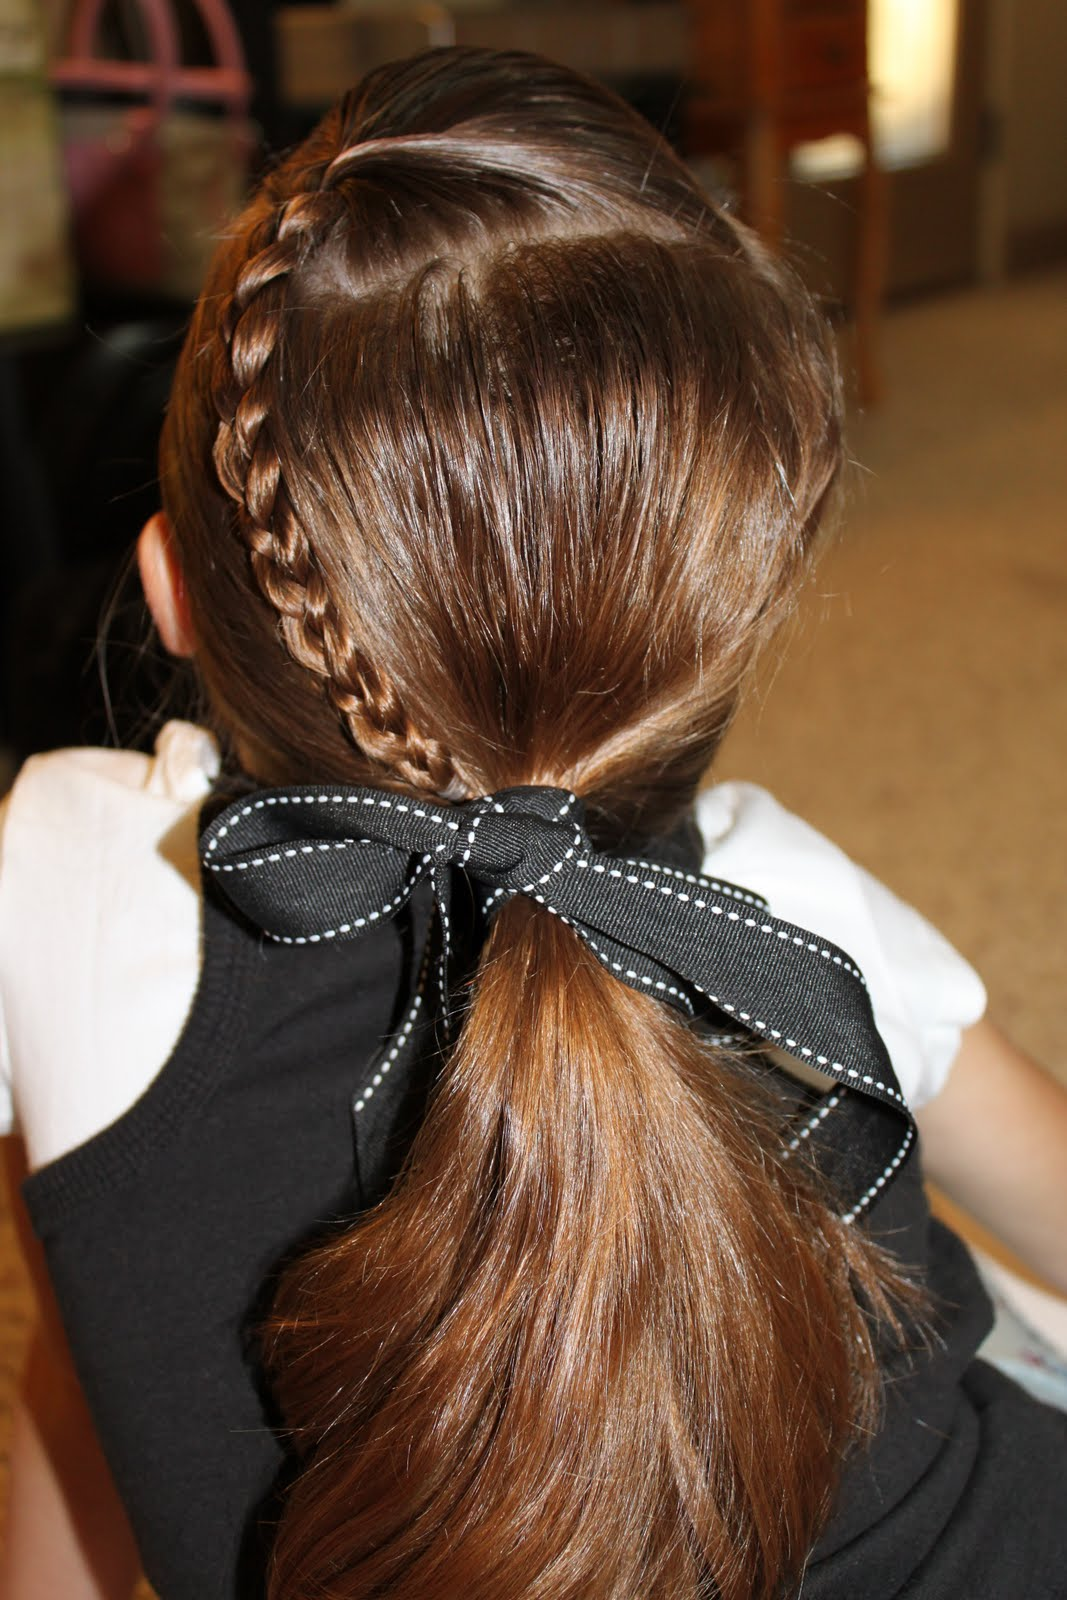 Latest Hairstyle Ideas For New Gen Teens title=